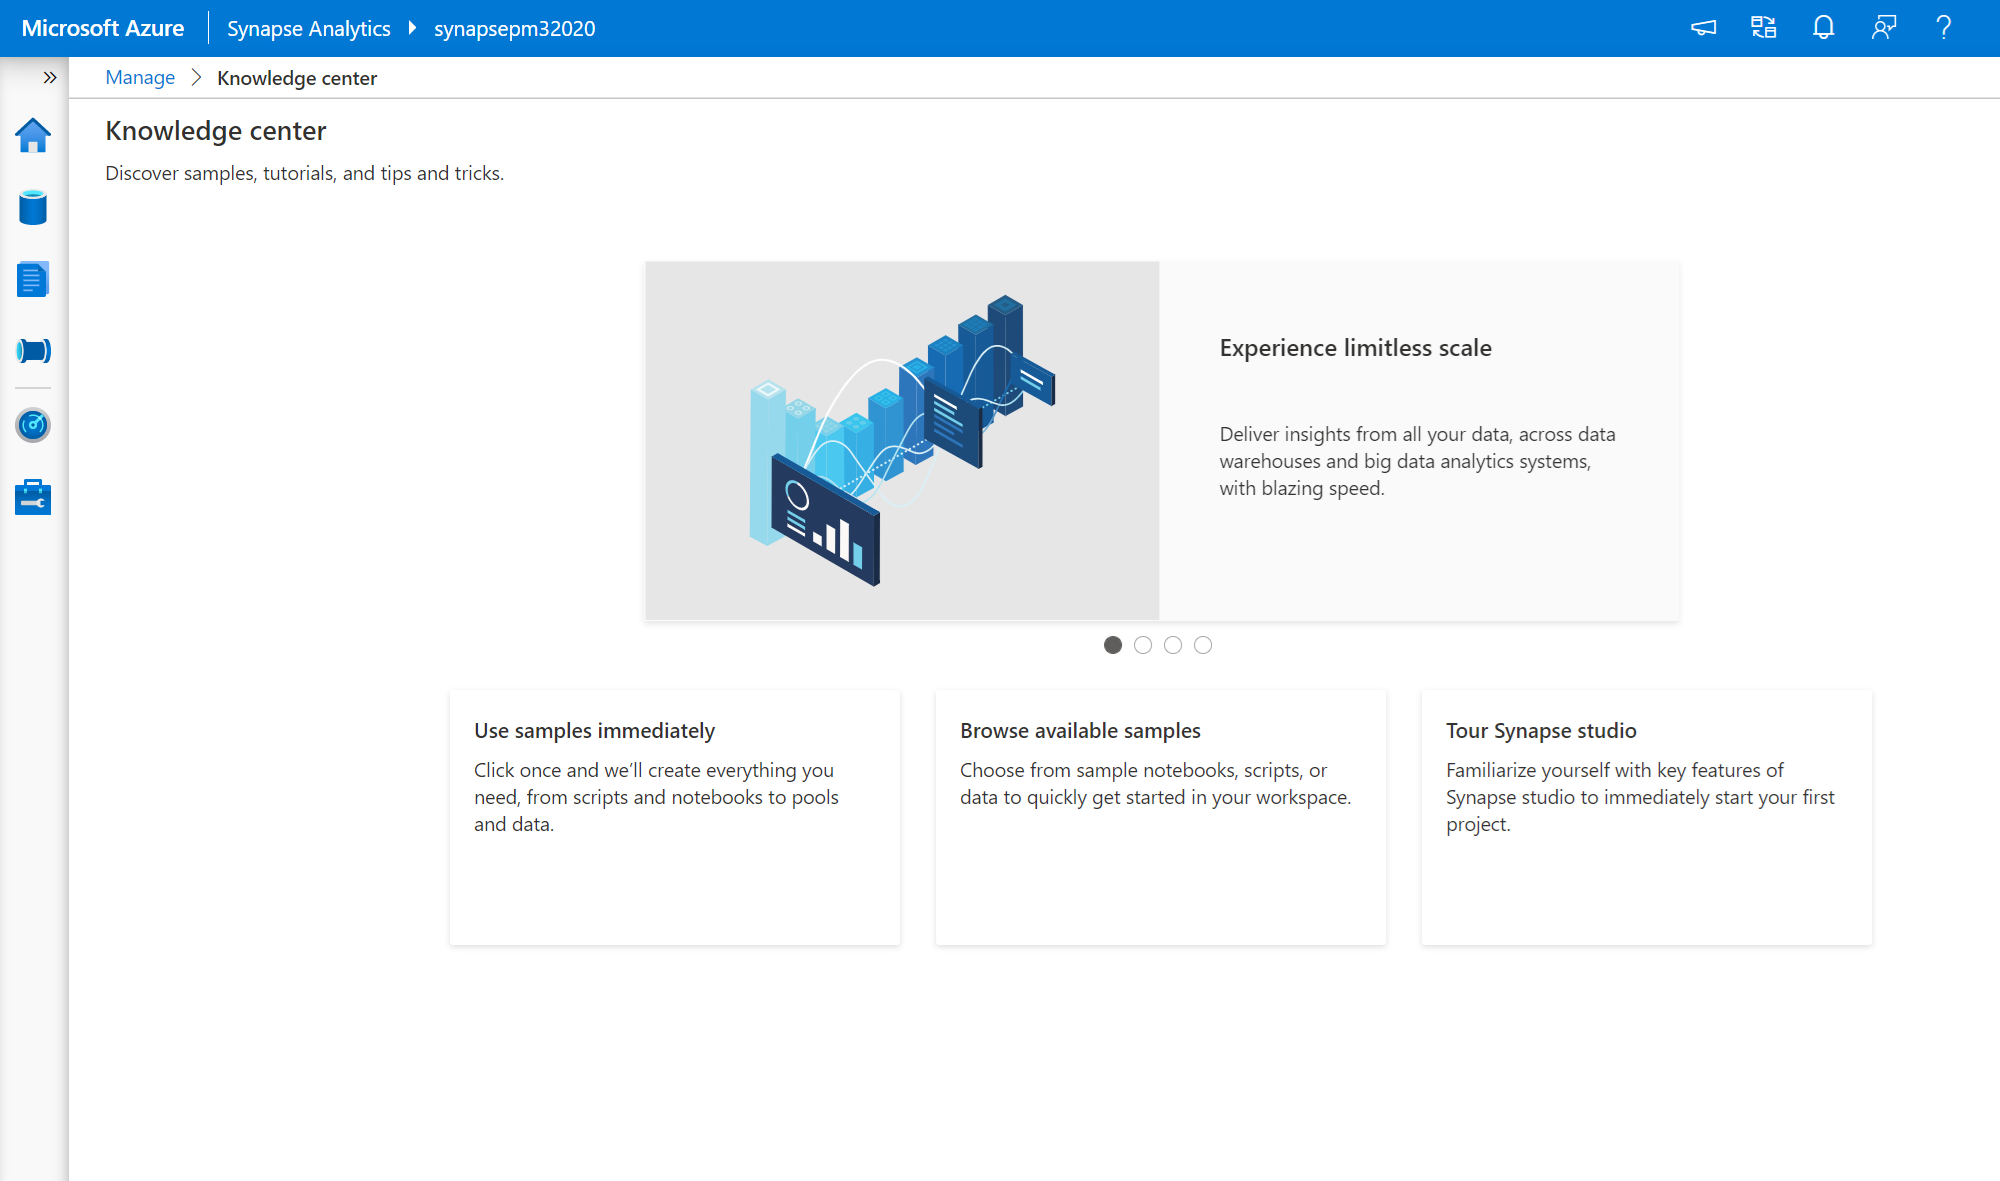 Quickly get started with samples in Azure Synapse Analytics